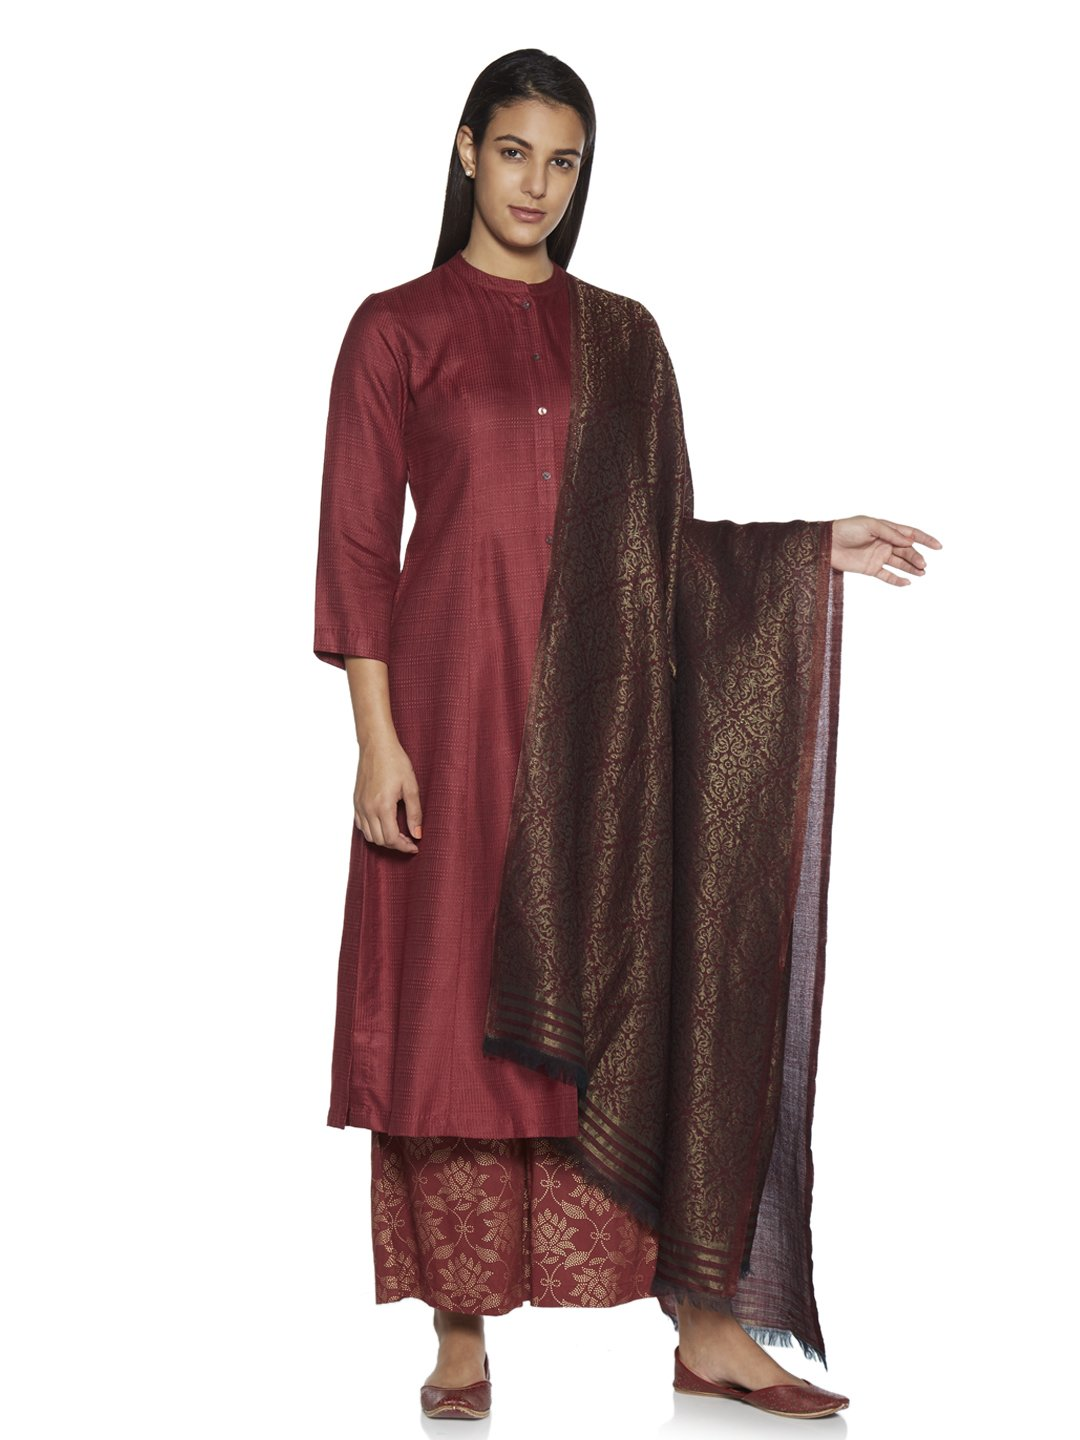 Zuba by Westside Maroon Ethnic Print Wool-Blend Shawl